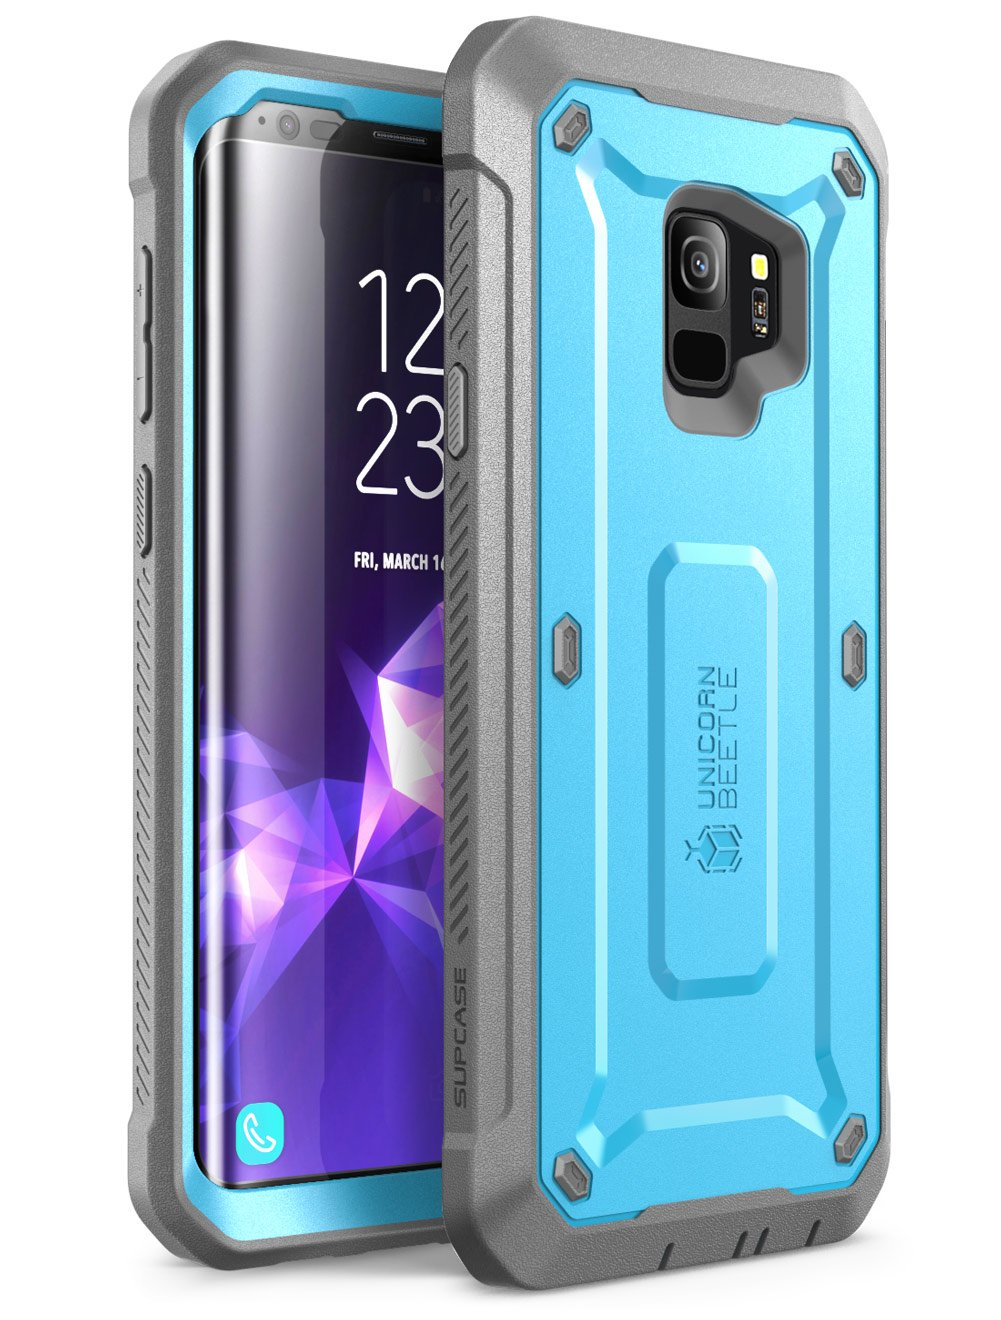 SUPCASE Unicorn Beetle Pro Series Case Designed for Galaxy S9, with Built-In Screen Protector Full-body Rugged Holster Case for Galaxy S9 (2018 Release) (Blue)